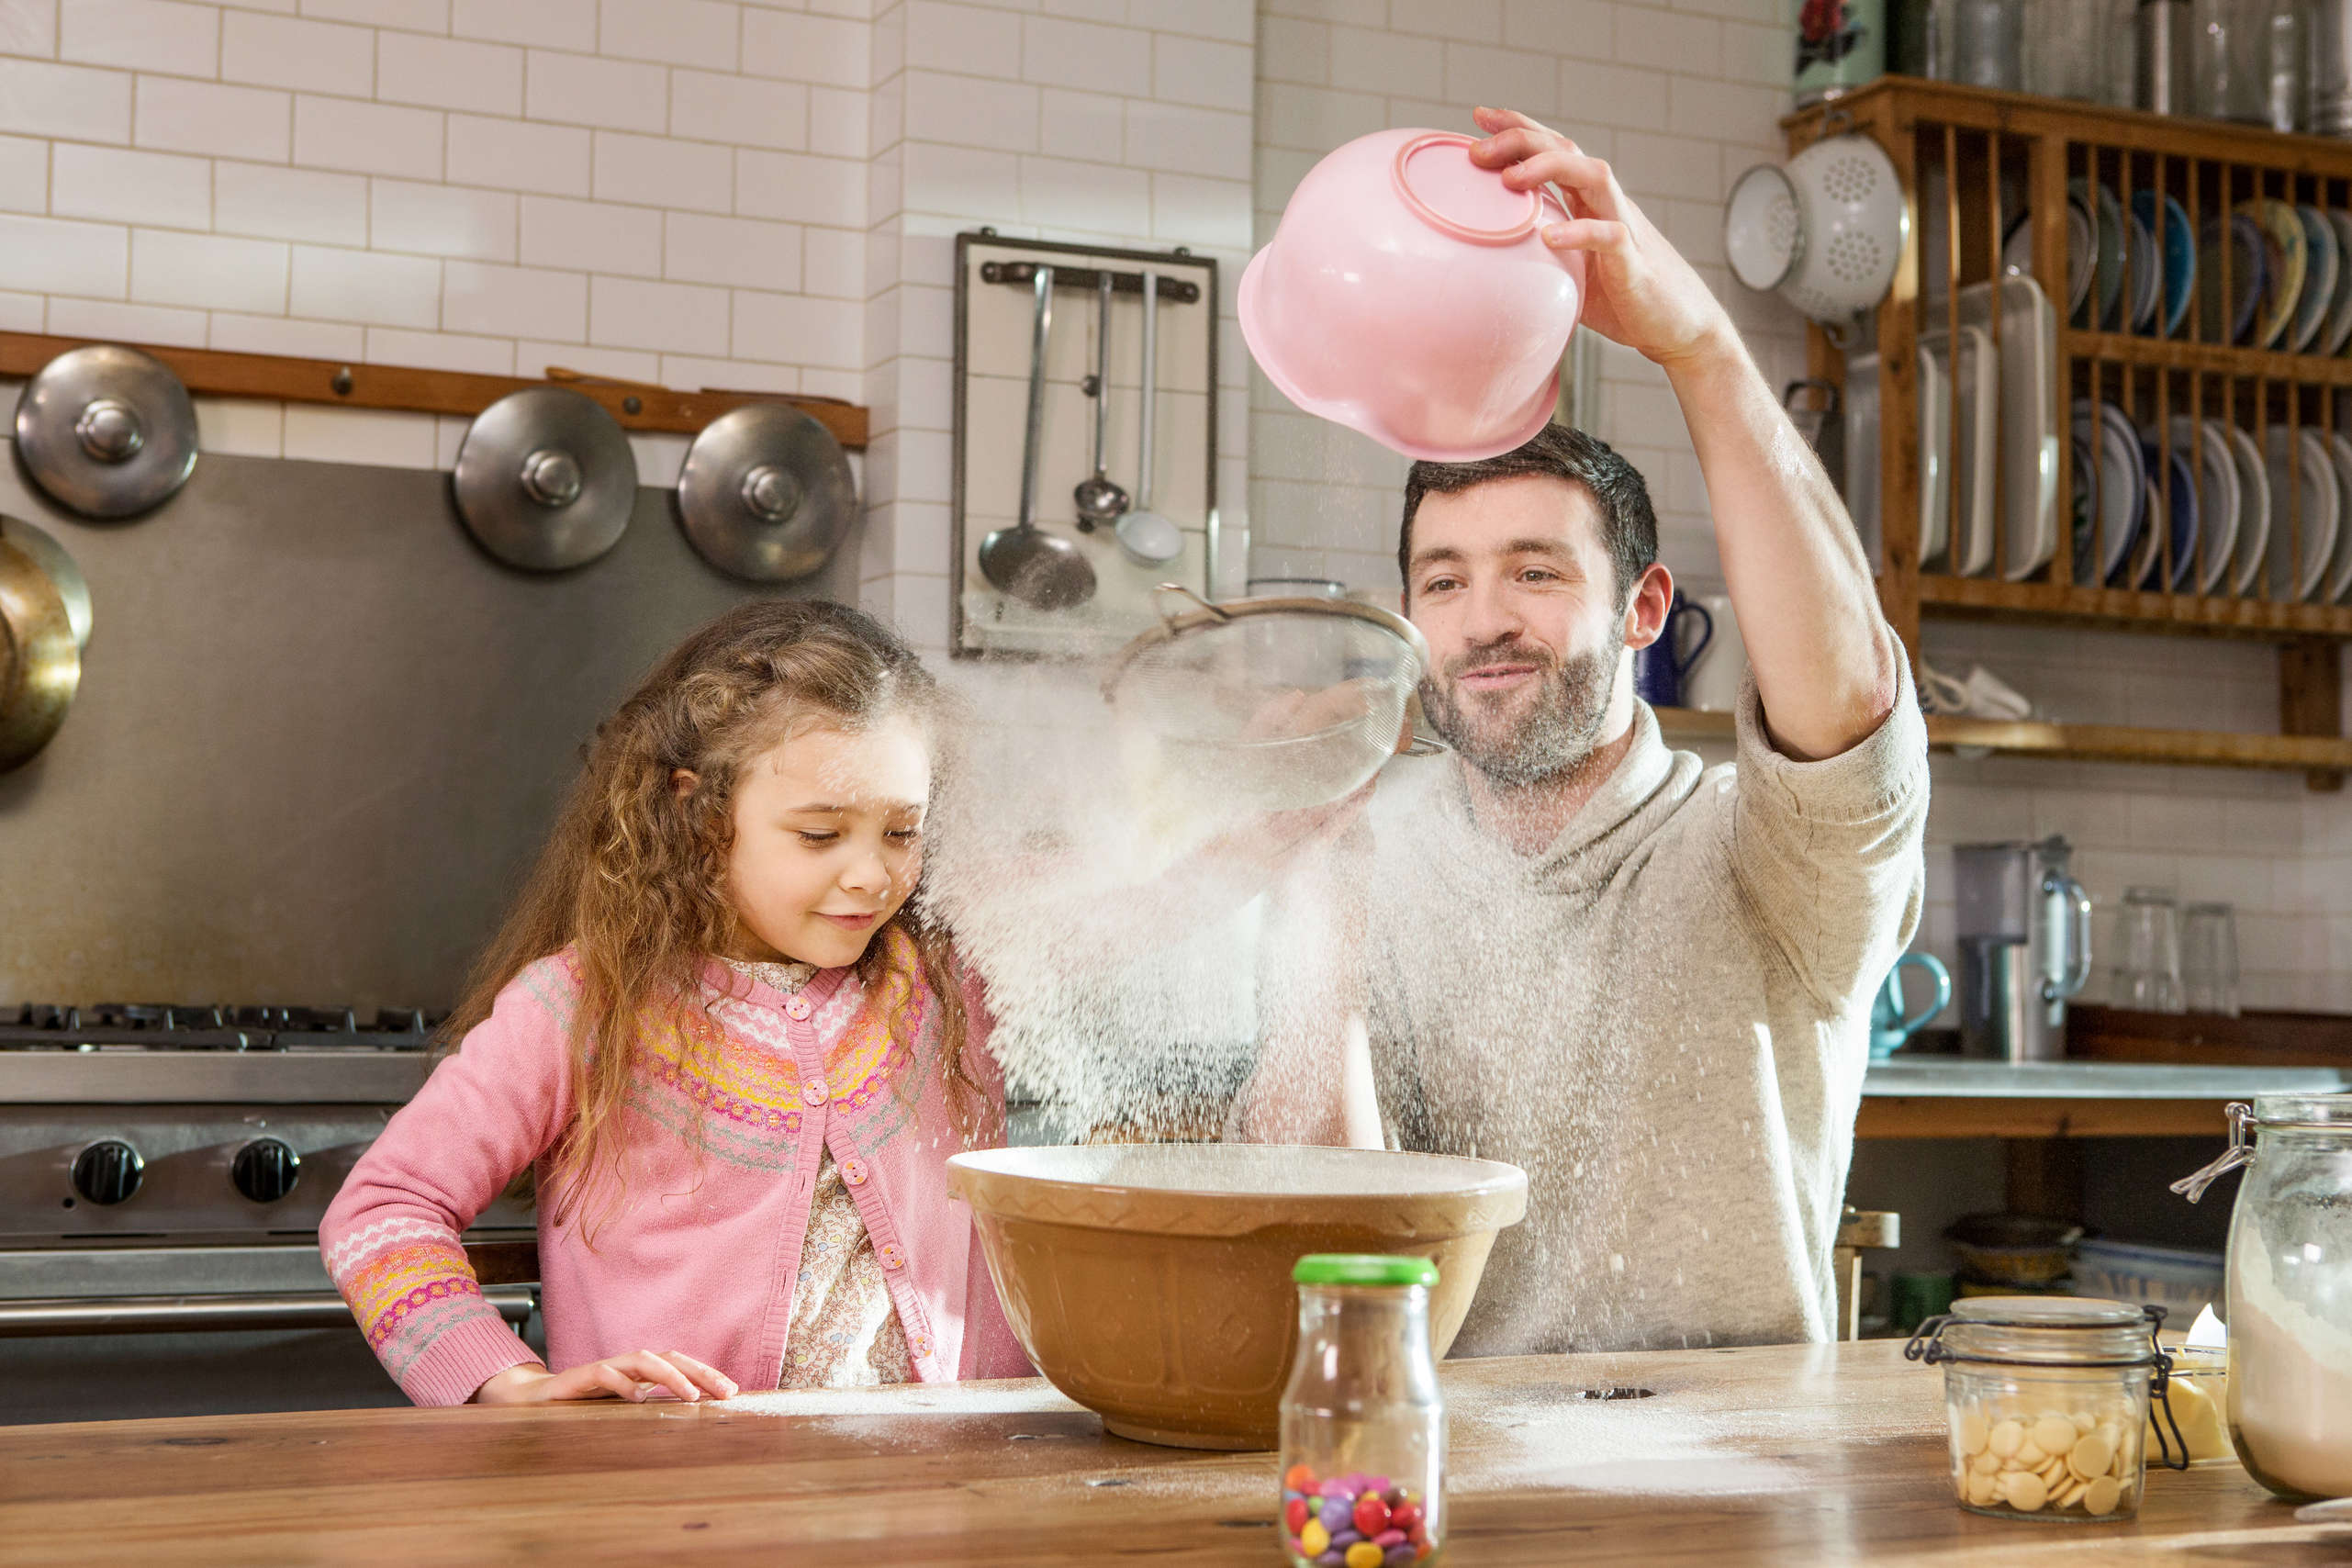 A father and daughter take part in Save the Children's Emergency Bake event.